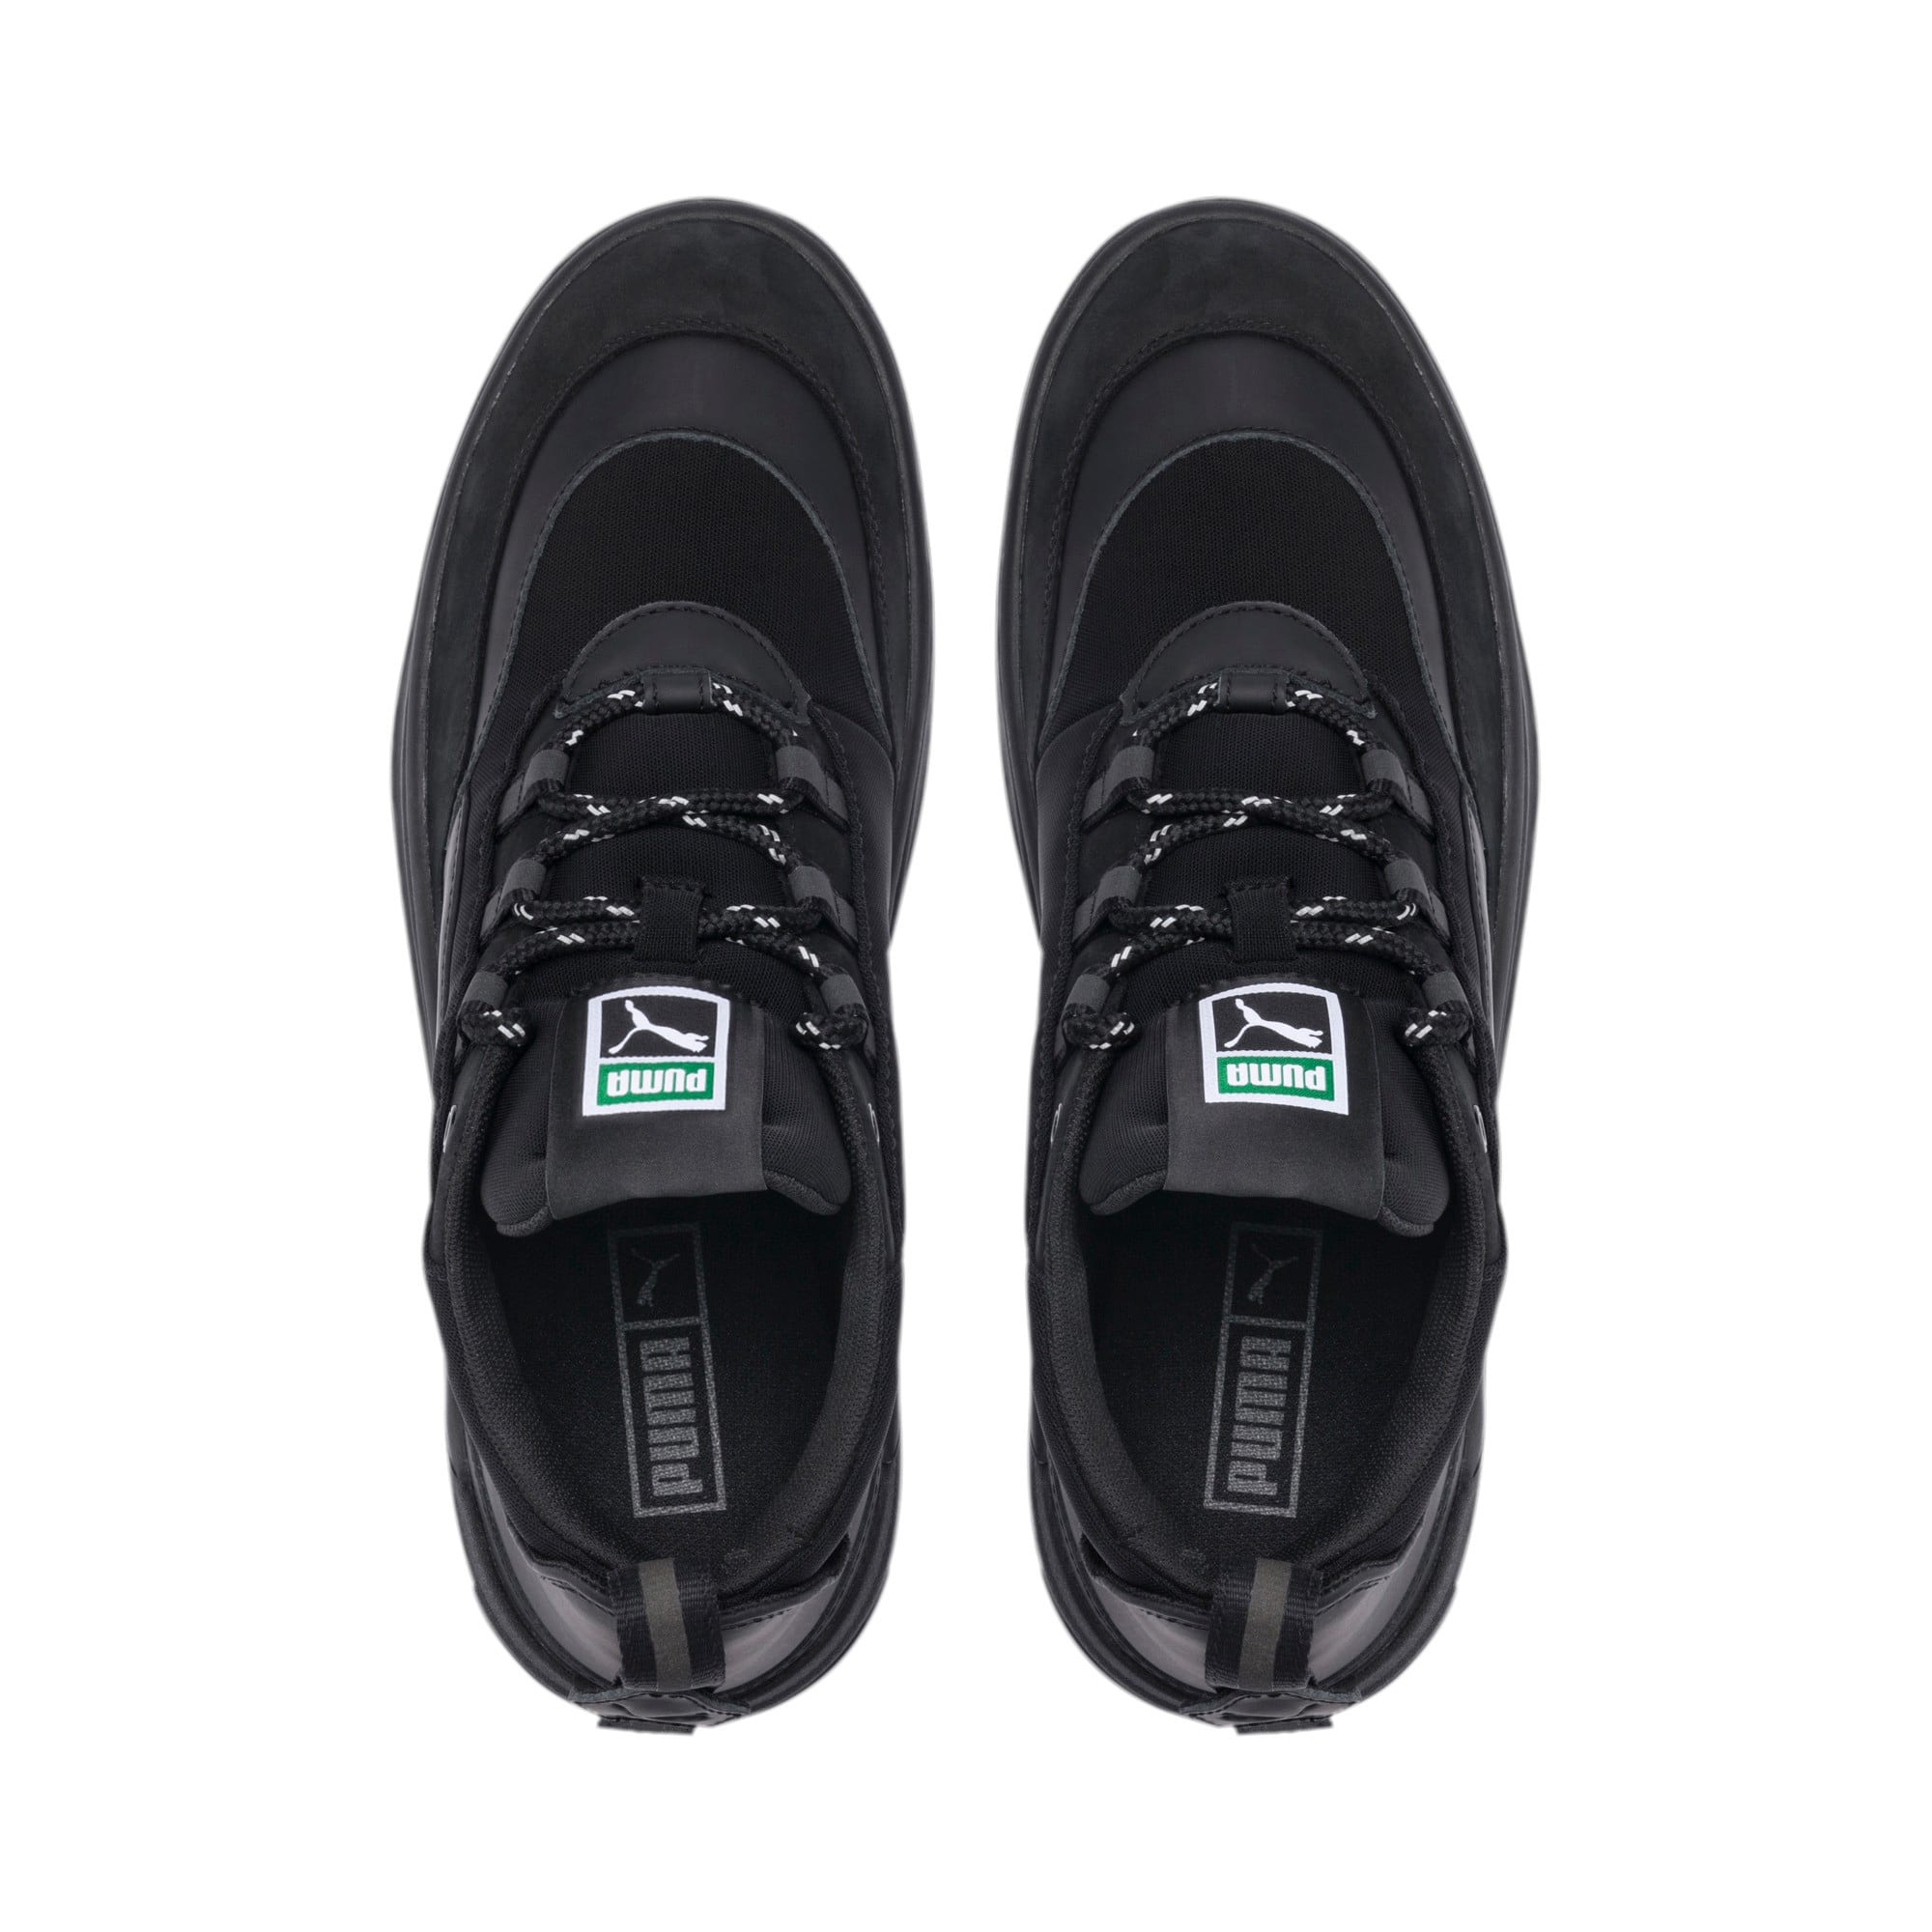 Thumbnail 6 of Cali Zero Demi Triple Black Trainers, Puma Black-Puma Black, medium